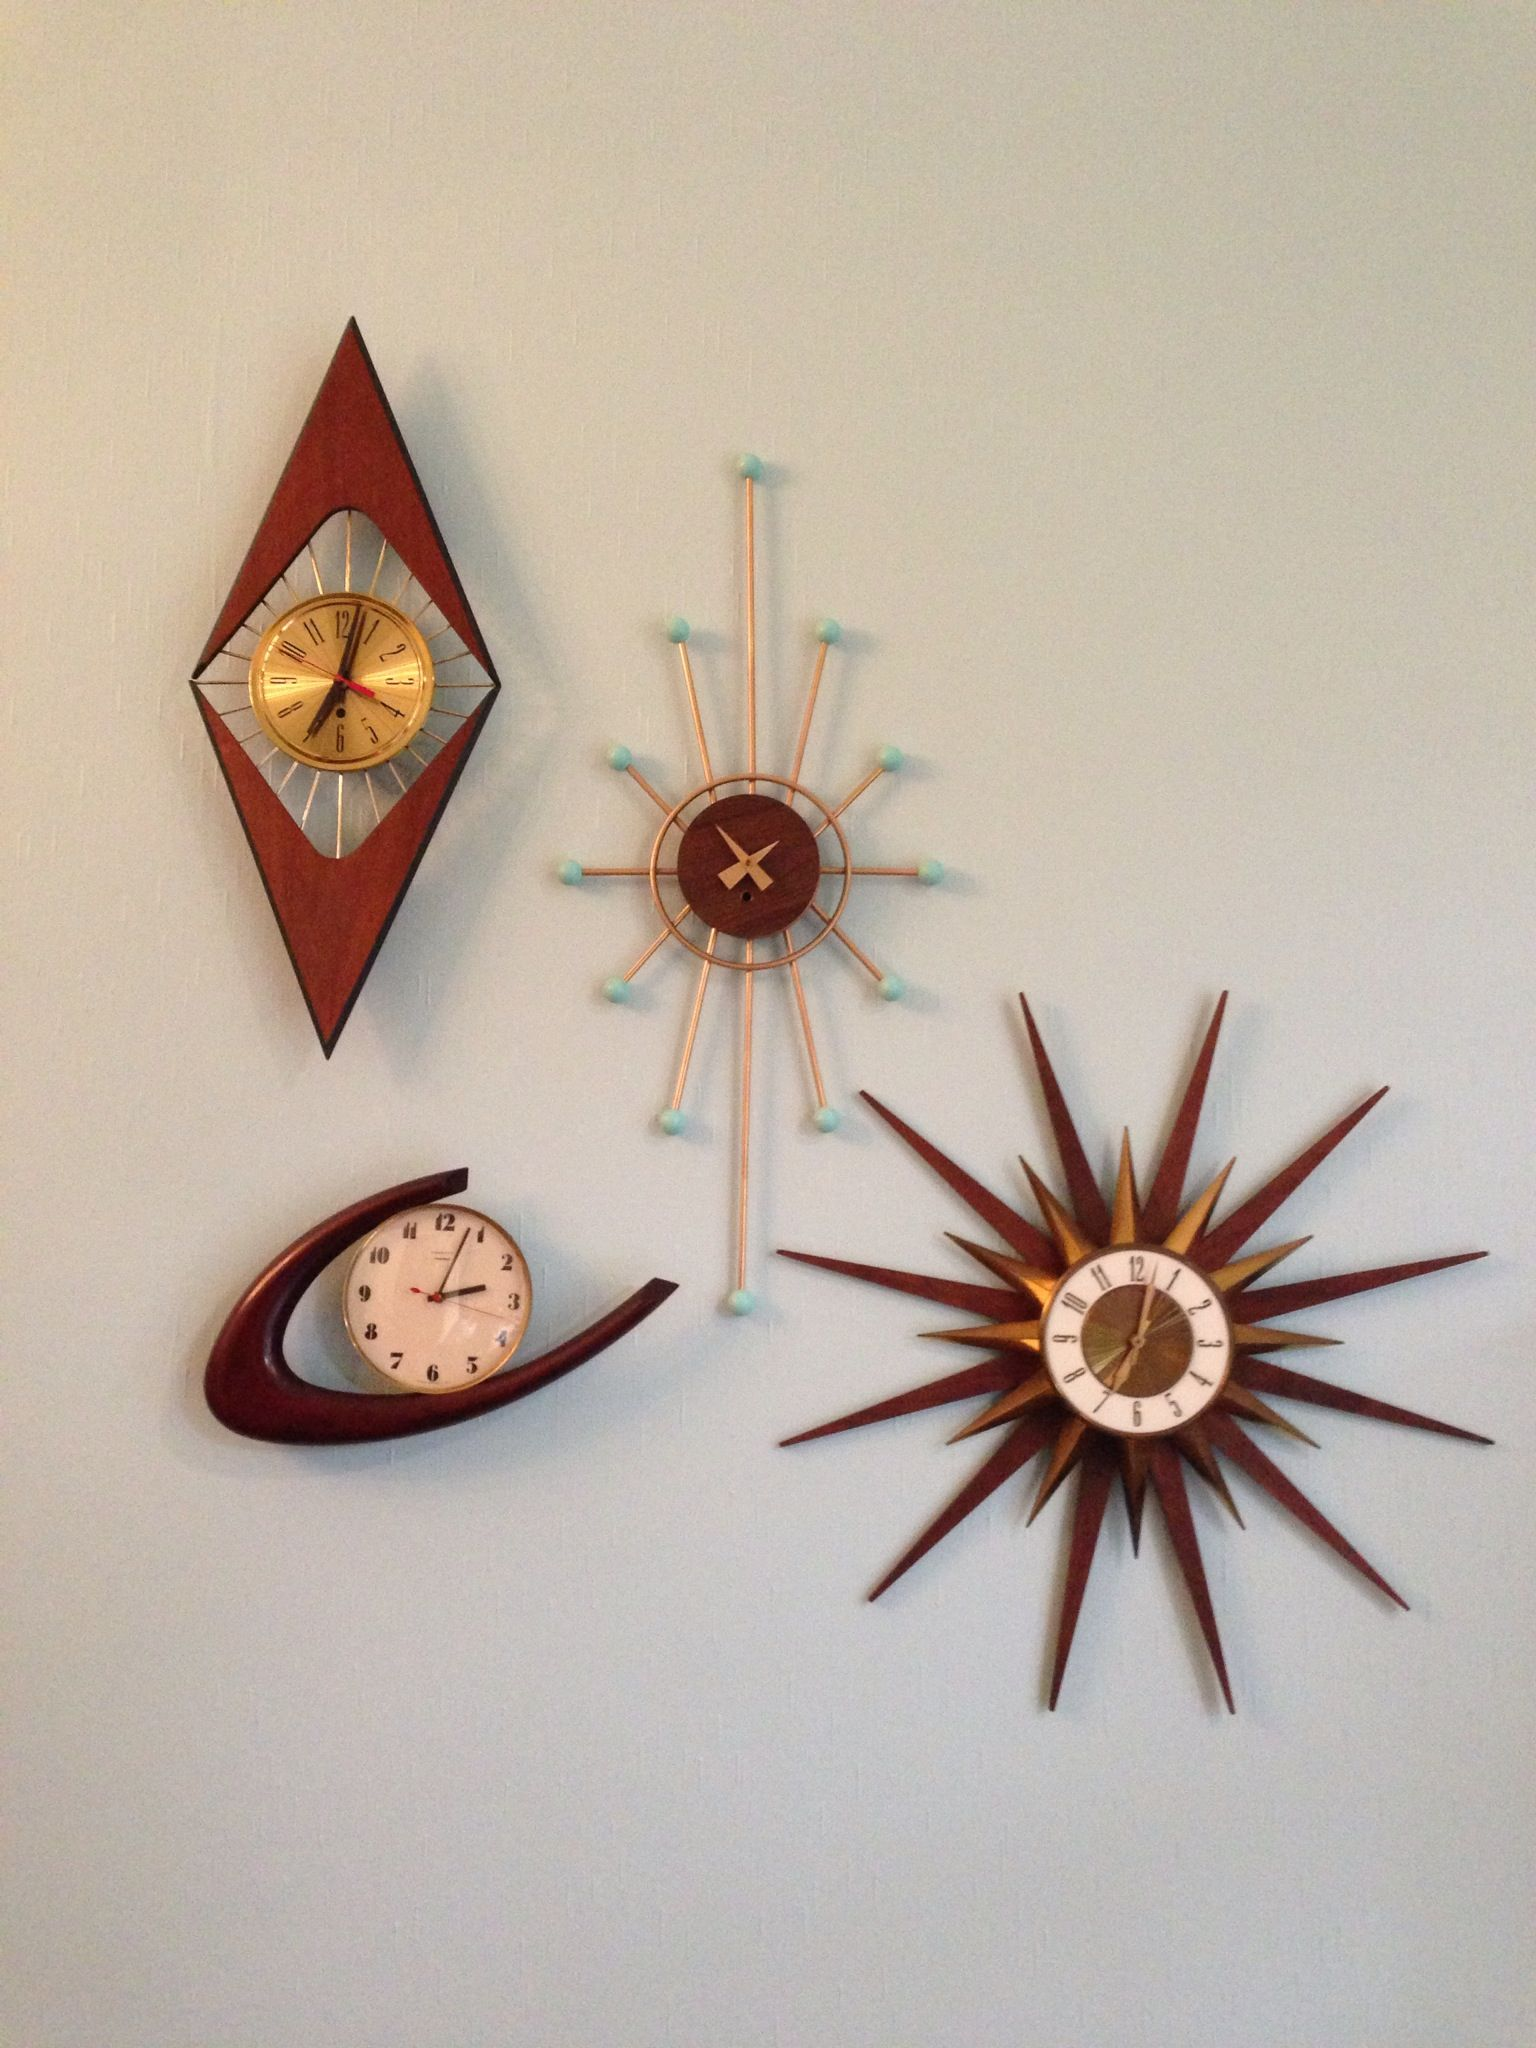 Mcm Wall Clocks, Love The Multiple Clocks Hung Together